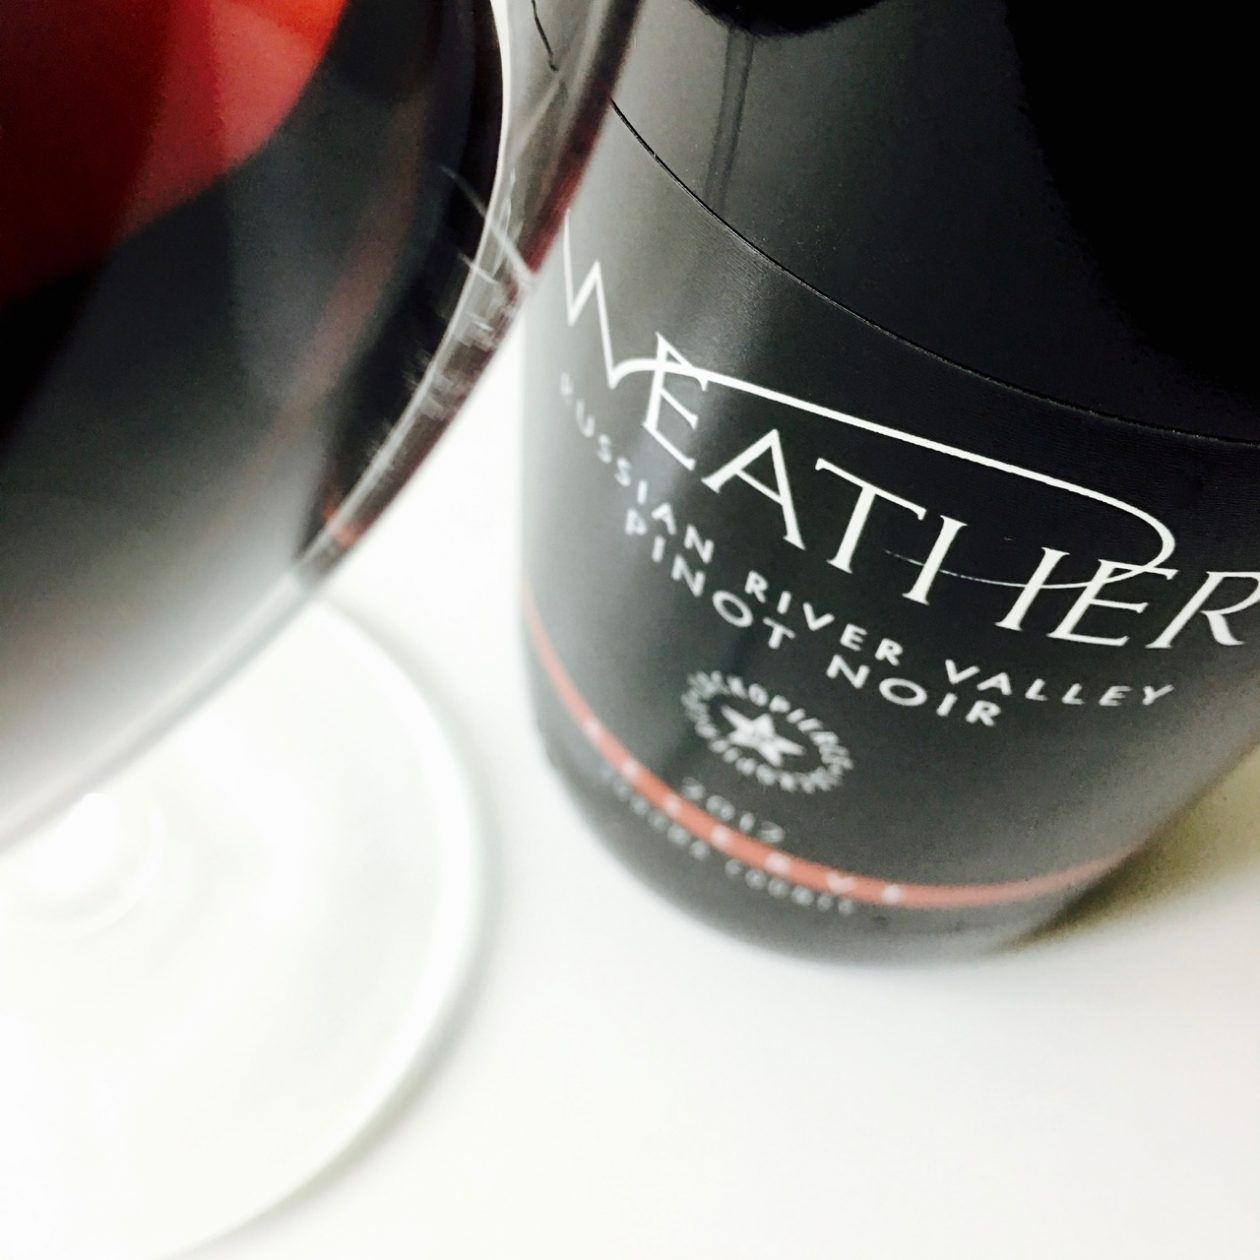 2012 Weather Pinot Noir Reserve Russian River Valley, Sonoma County